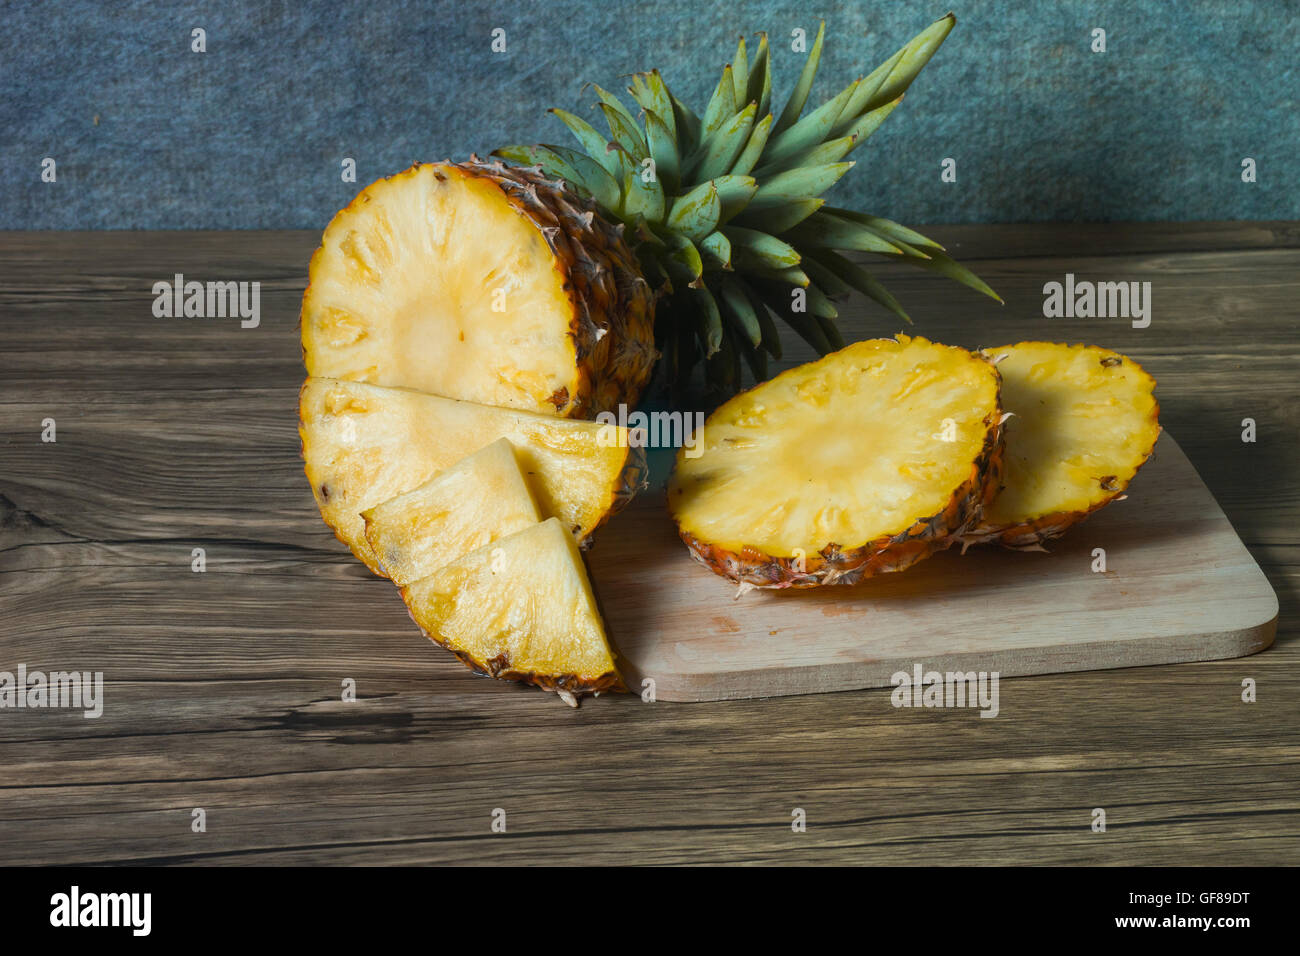 pineapple on the wood texture background - Stock Image